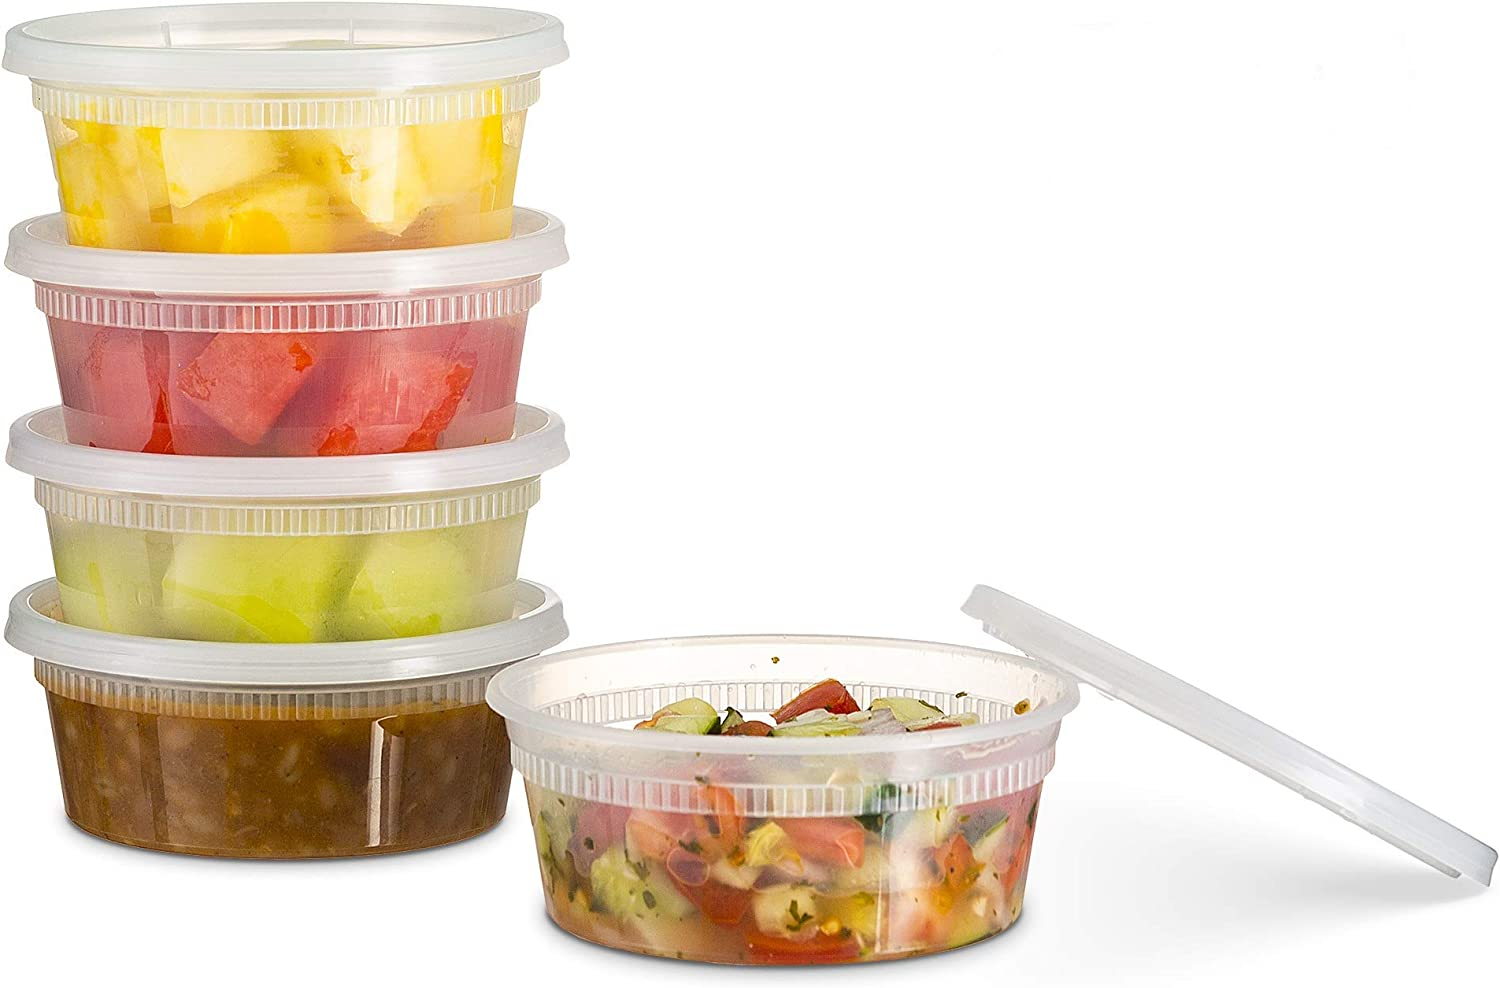 [24 Count 8 Oz Combo] Basix Disposable plastic Deli Food Storage Containers With Plastic Lids, Leakproof, Great For Meal Prep, Picnic, Take Out, traveling, Fruits, Snack, or Liquids